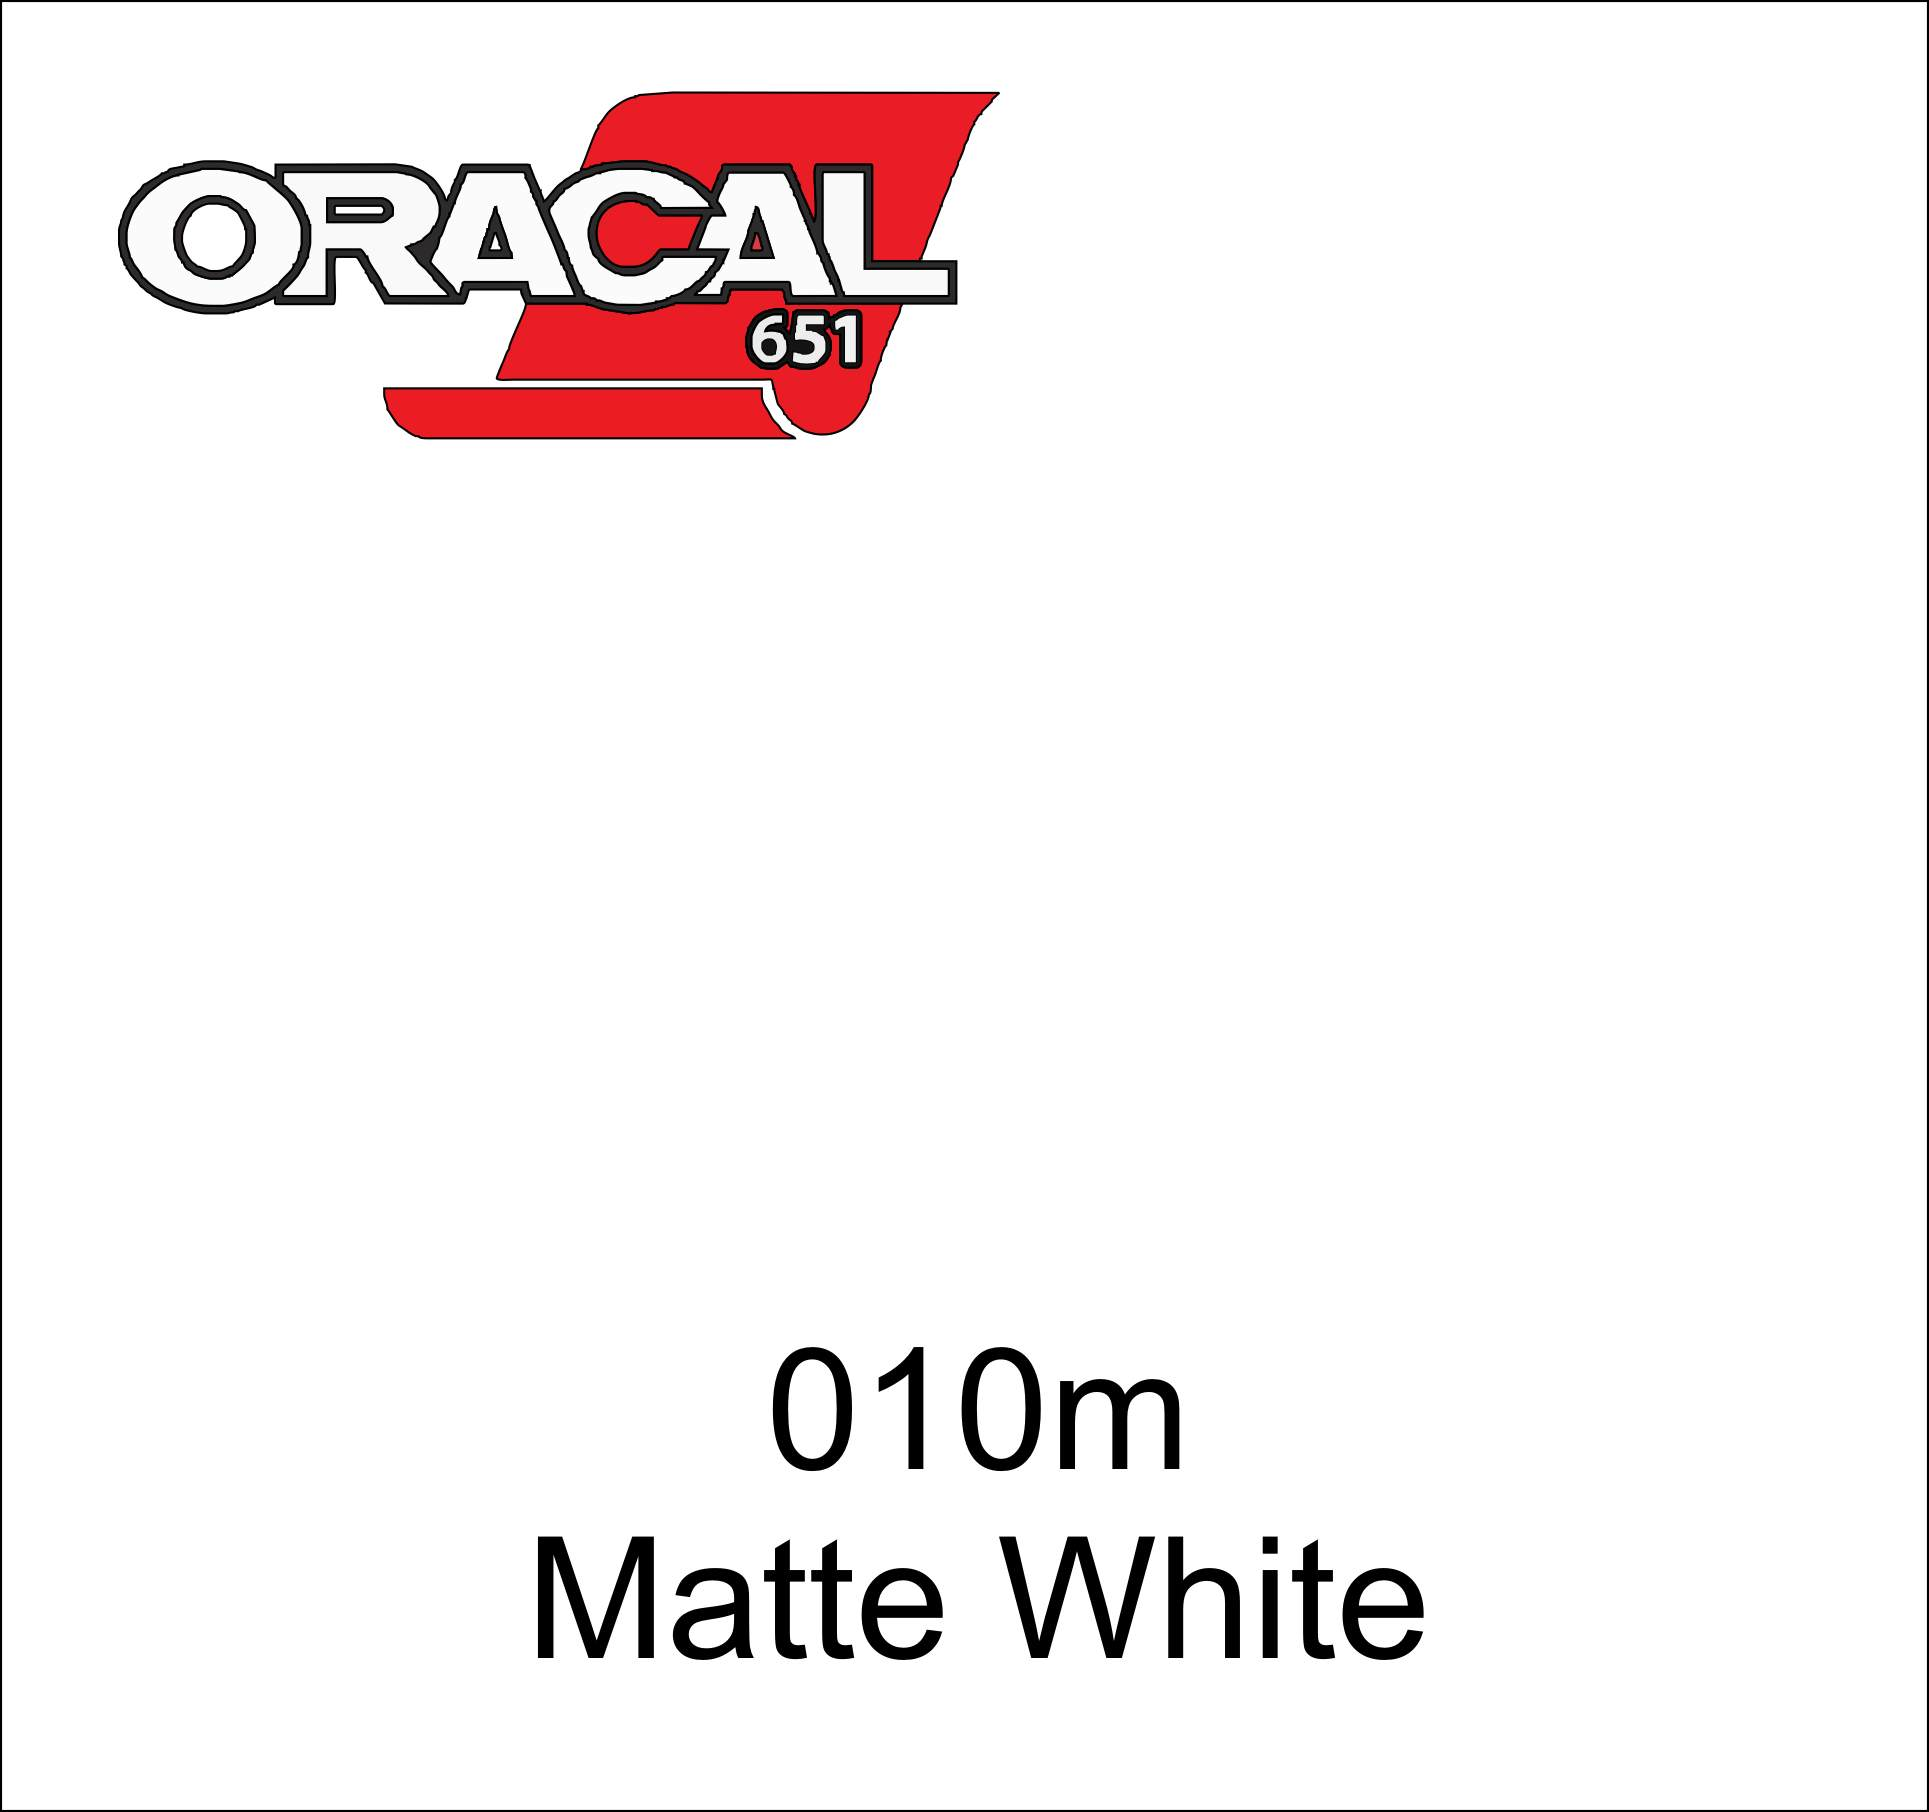 "12"" x 5 ft ORACAL 651 White Matte (010M) Adhesive Vinyl for Craft, Decal, Sign. Compatible with Cricut, Silhouette, ANY Machine"